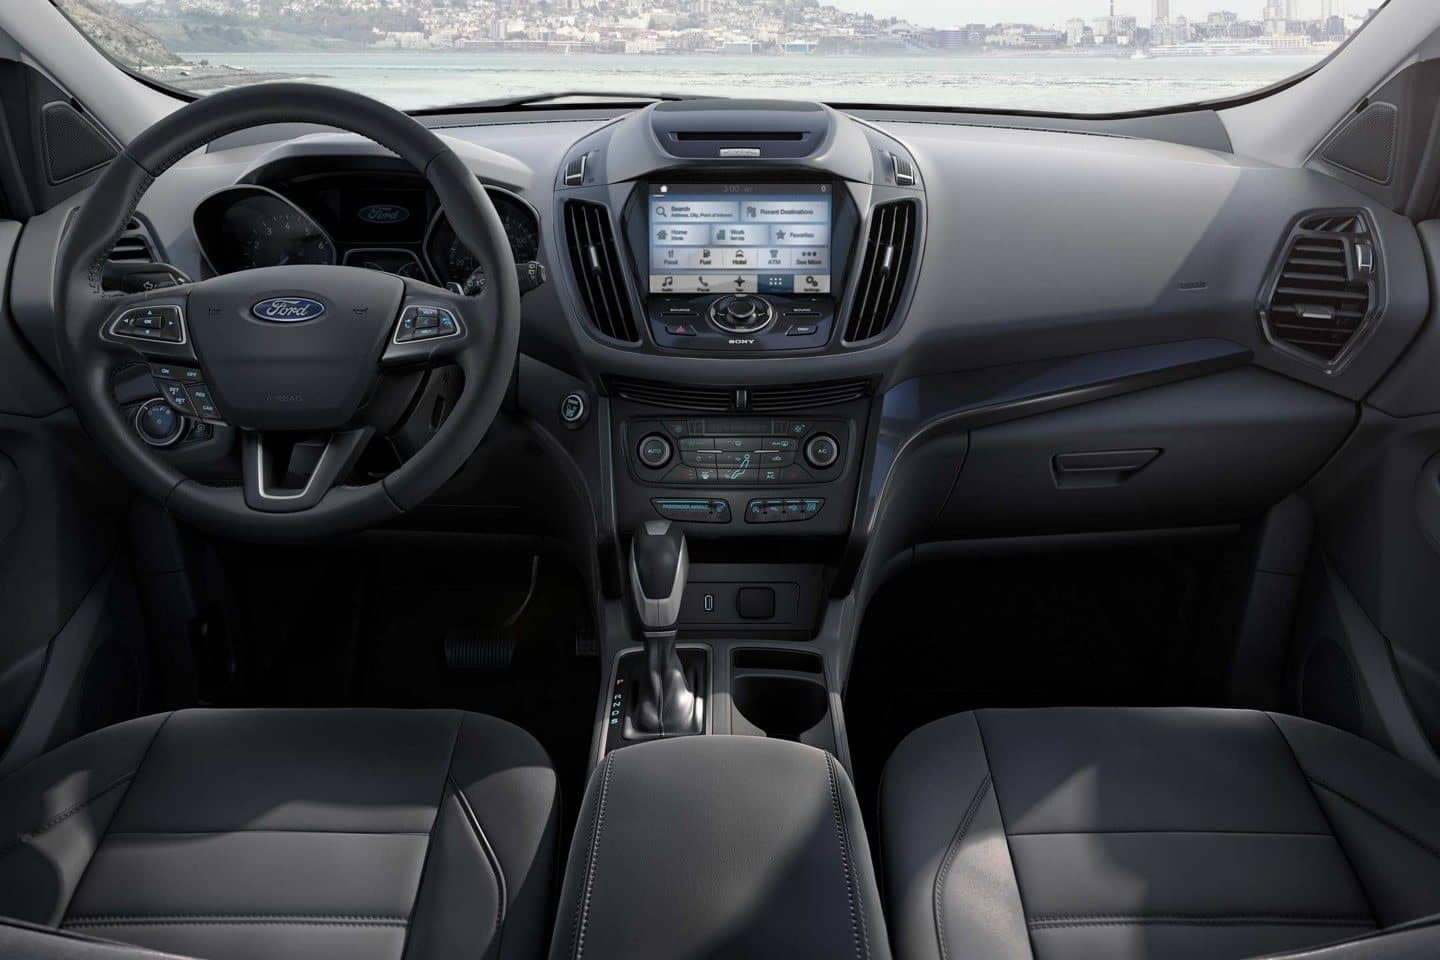 2018 Ford Escape Canada Titanium interior in Charcoal Black